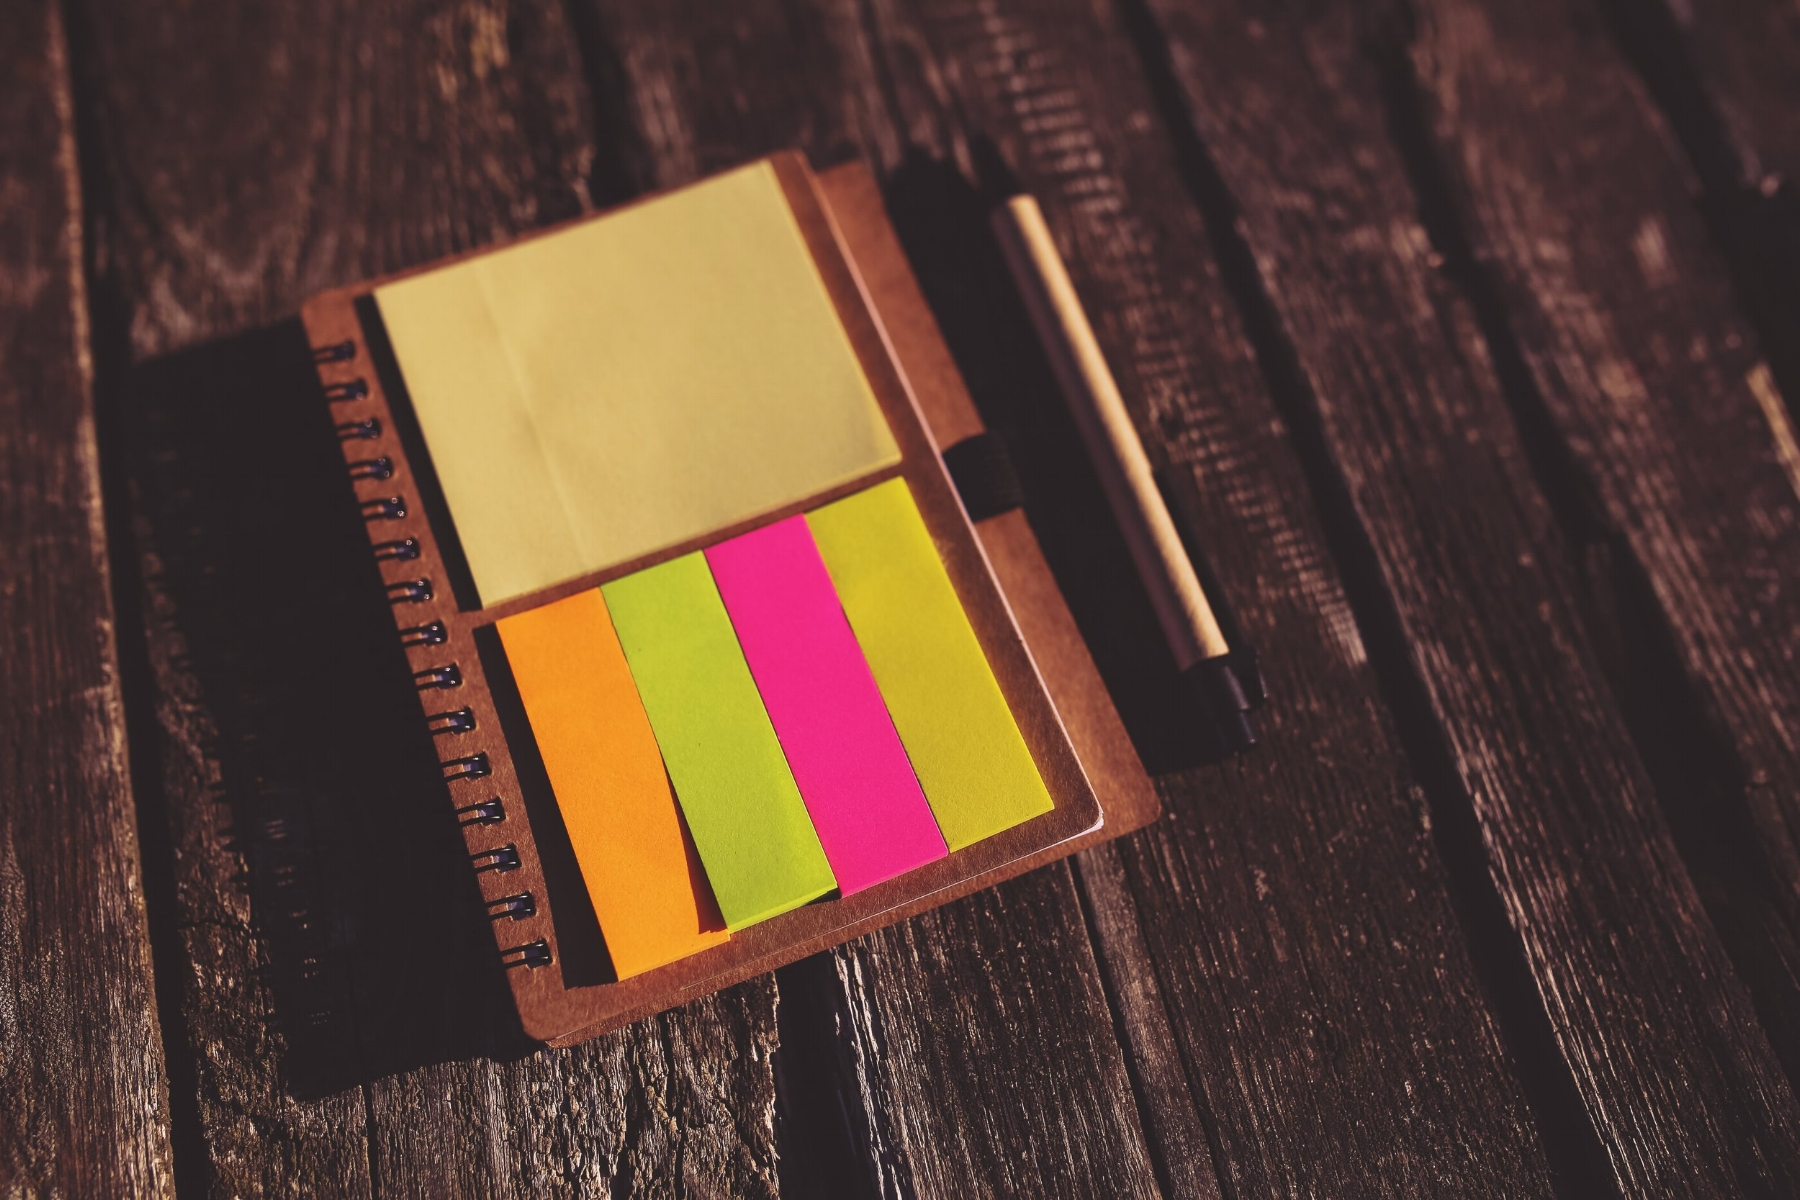 Post it notes - image accompanying an article about planning an album release